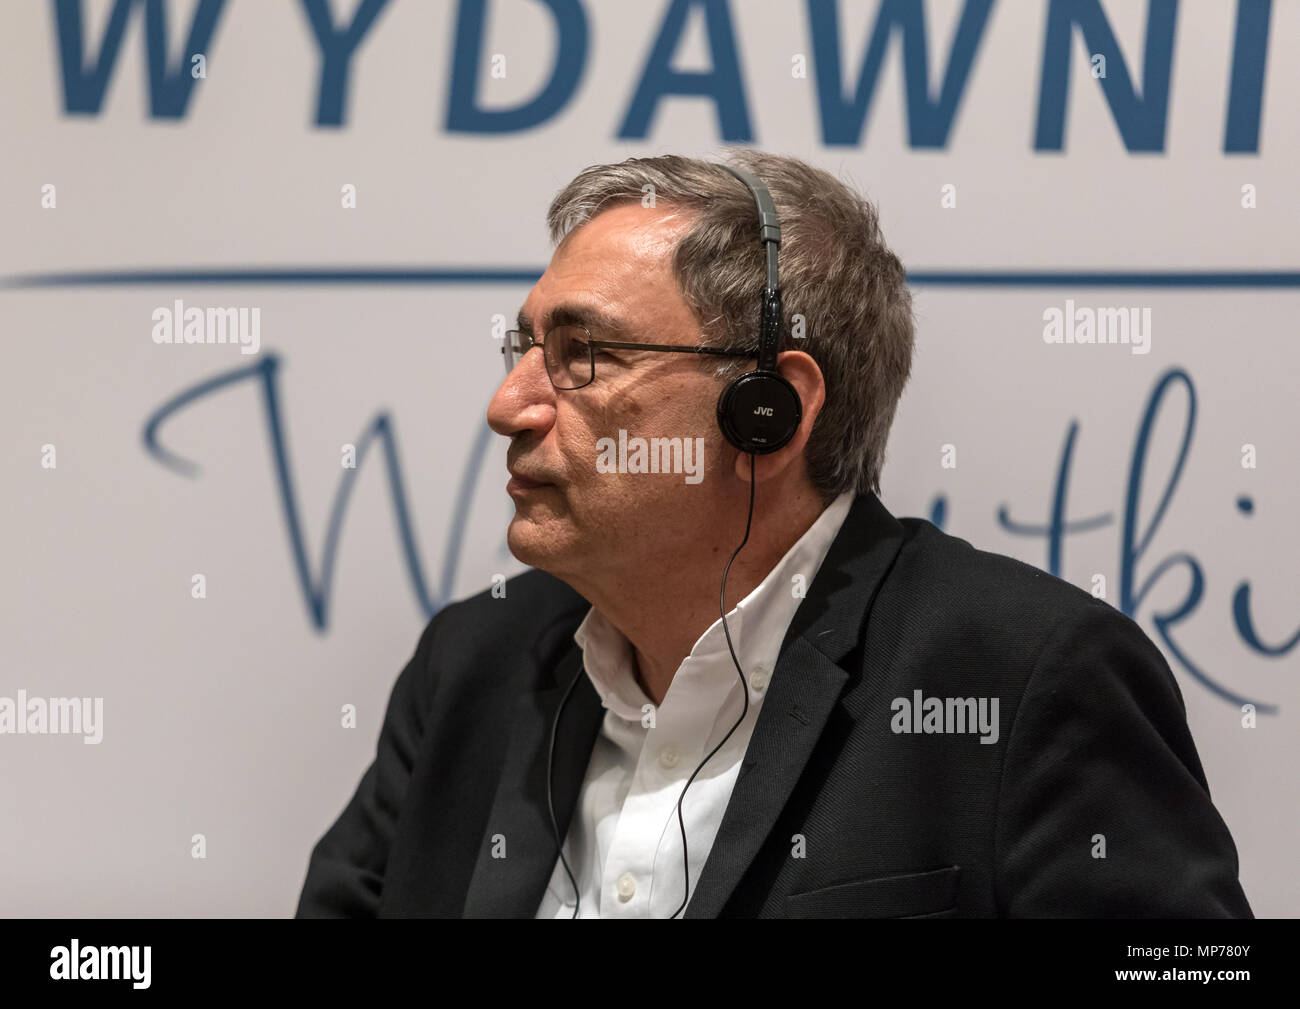 Cracow, Poland - May 21, 2018: Meeting with the Turkish writer, Nobel Prize laureate Orhan Pamuk in Krakow on the occasion of the 65th anniversary of the Literary Publishers. Poland Credit: Wieslaw Jarek/Alamy Live News Stock Photo